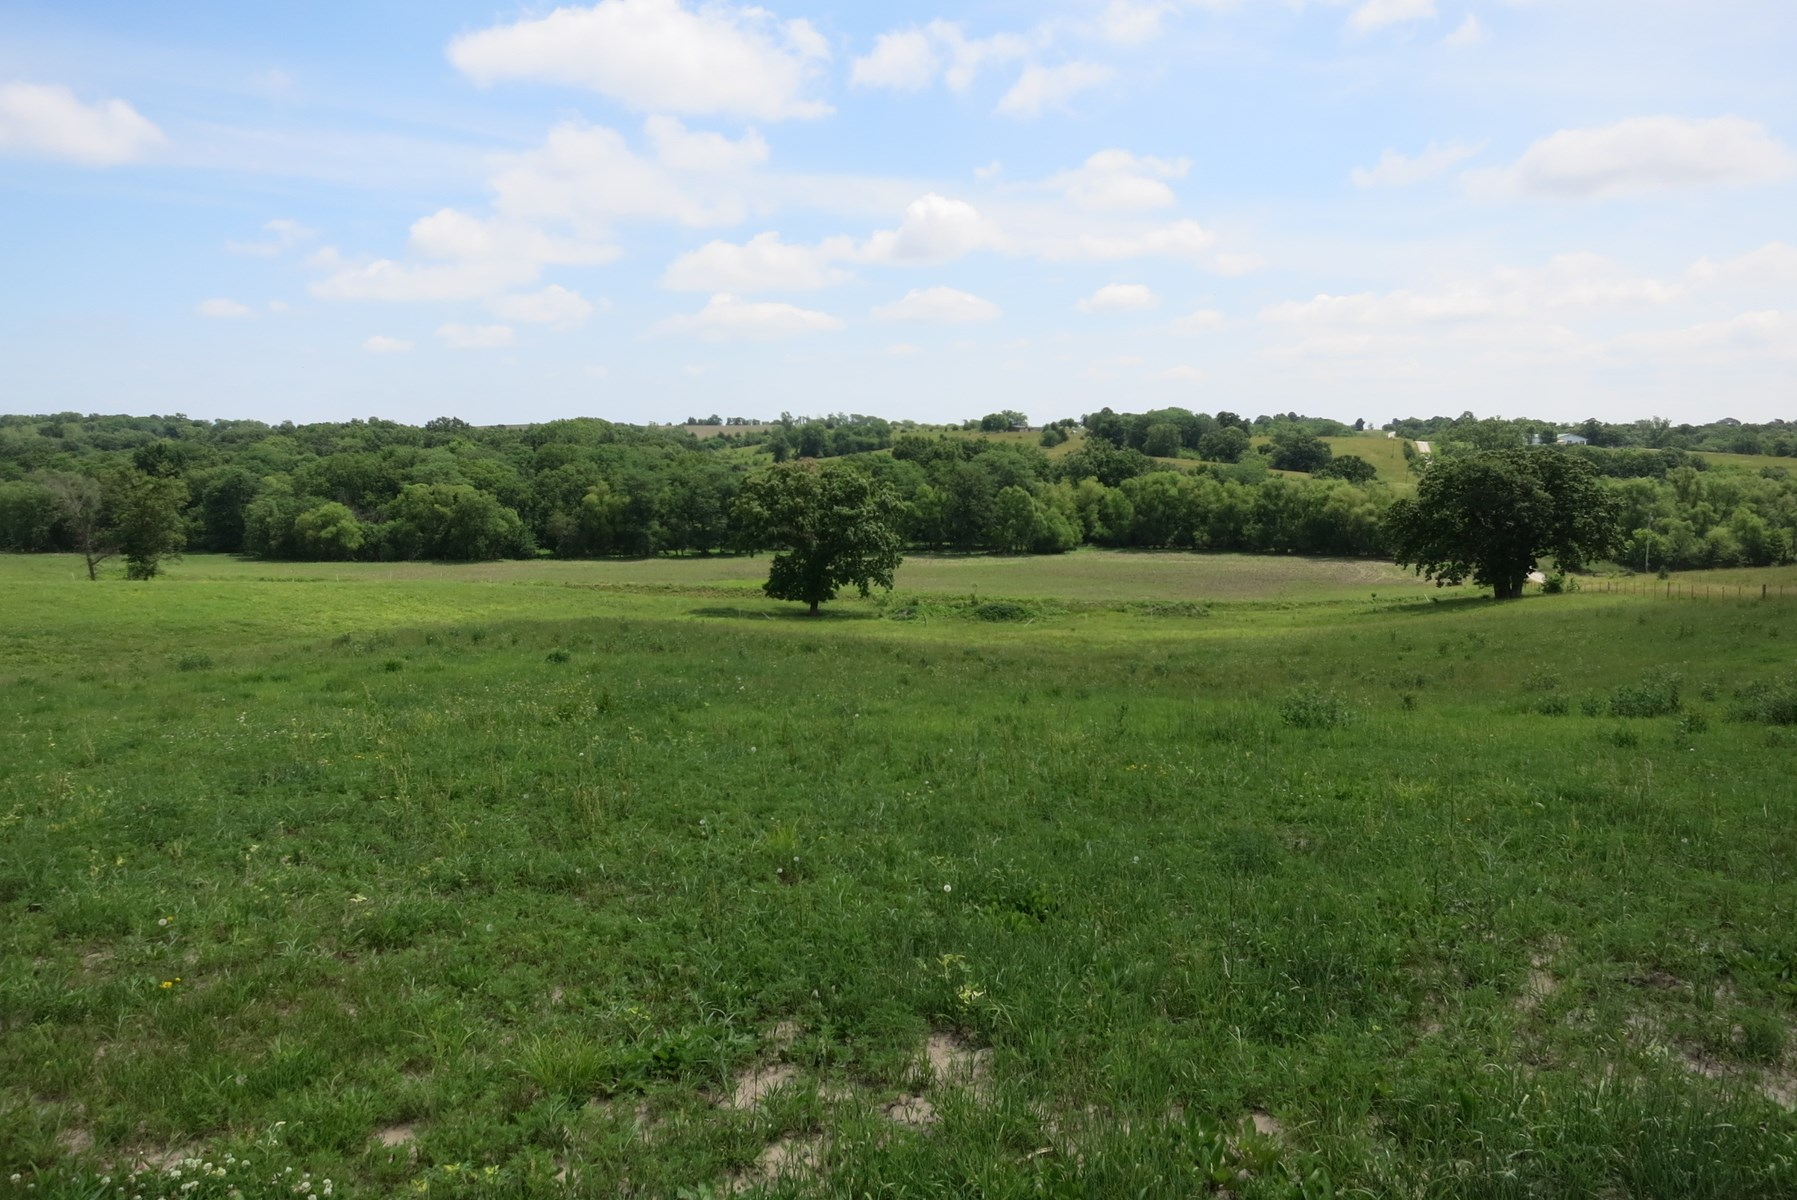 For Sale 40 Acre Tract in NW Missouri